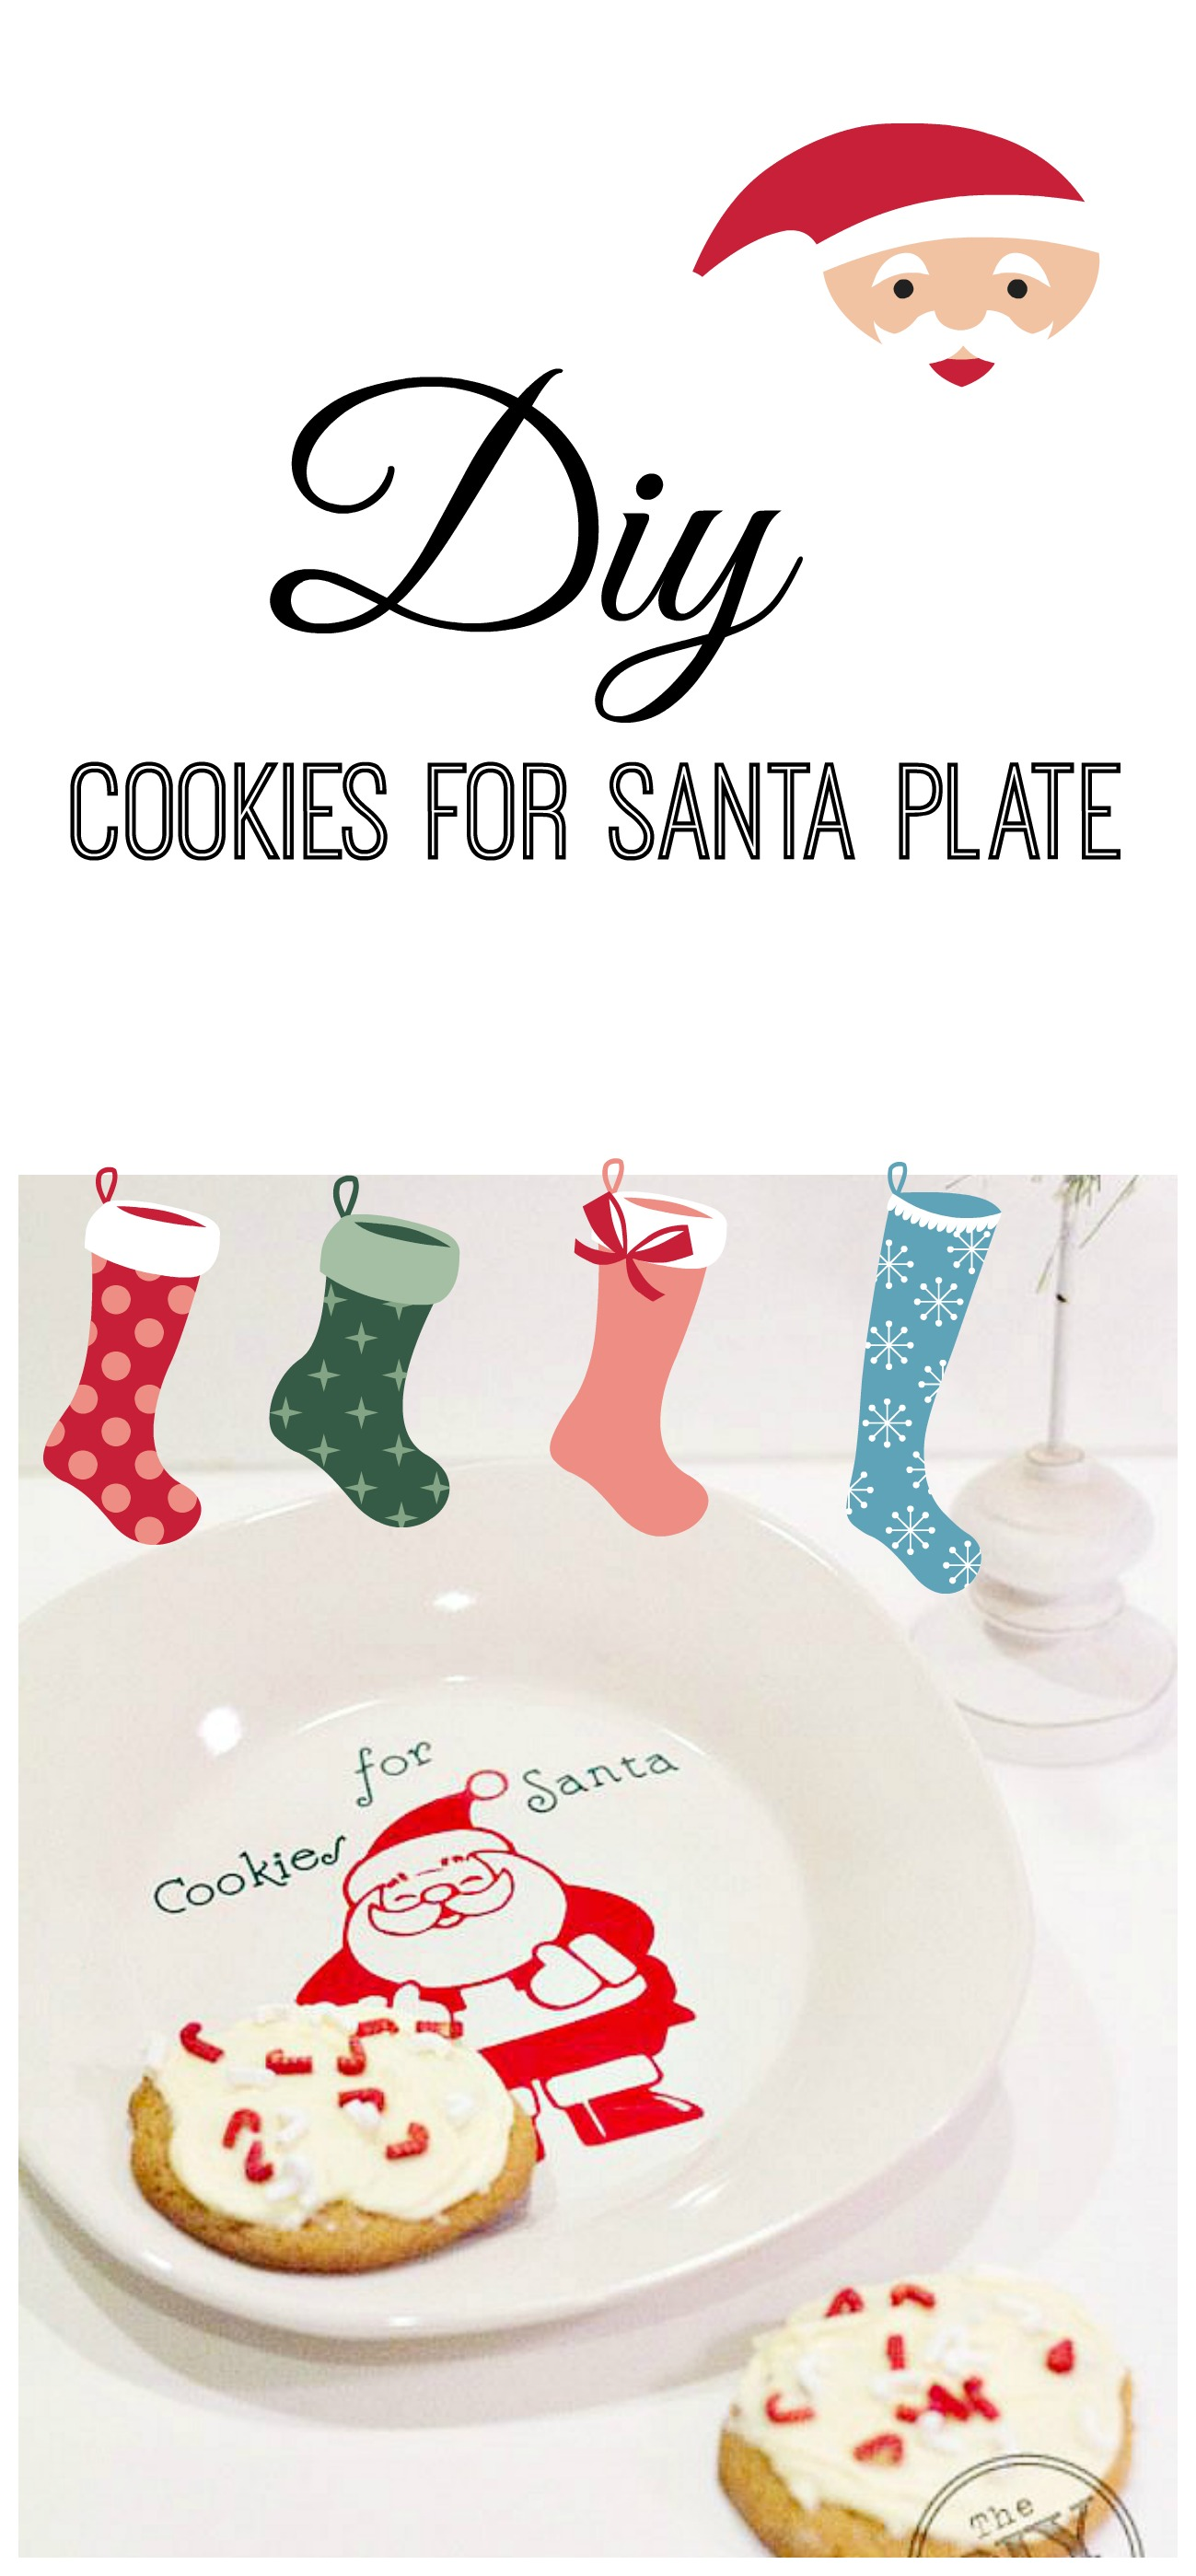 diy cookies for santa plate